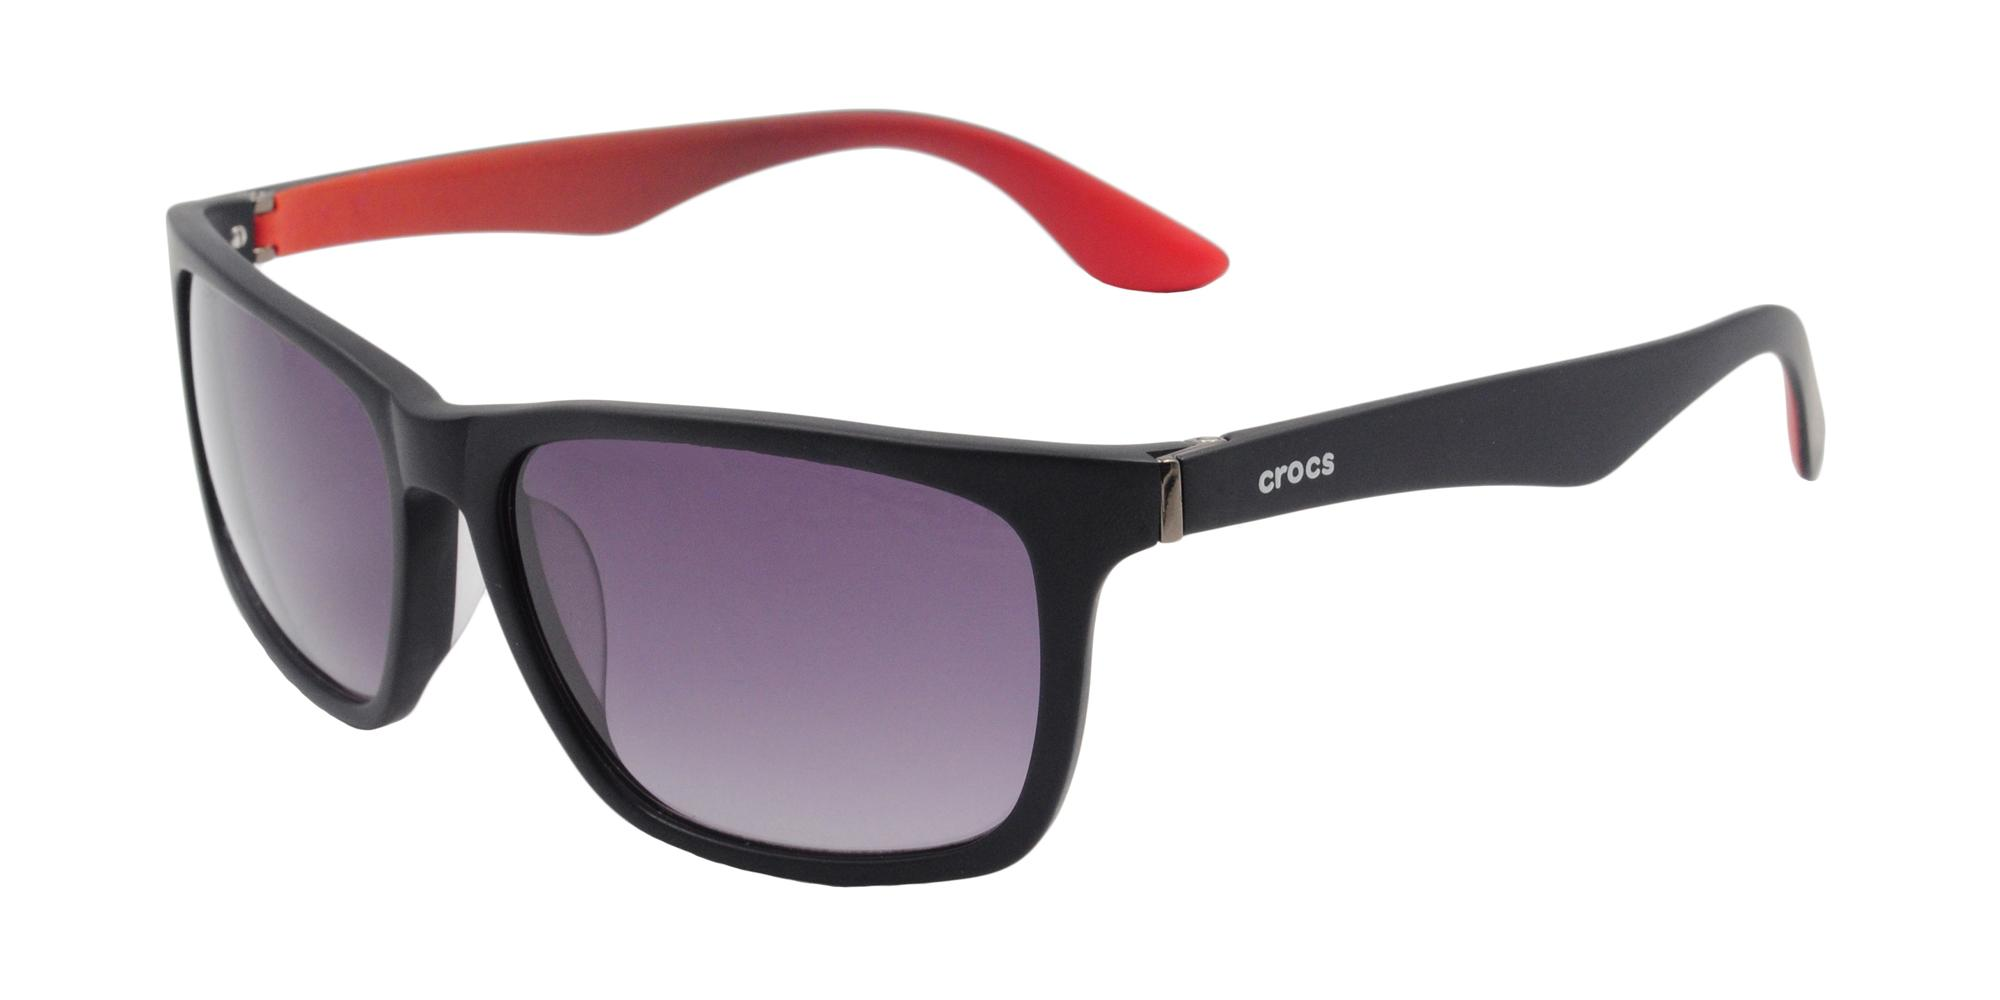 20BK CS4109 Sunglasses, Crocs Eyewear